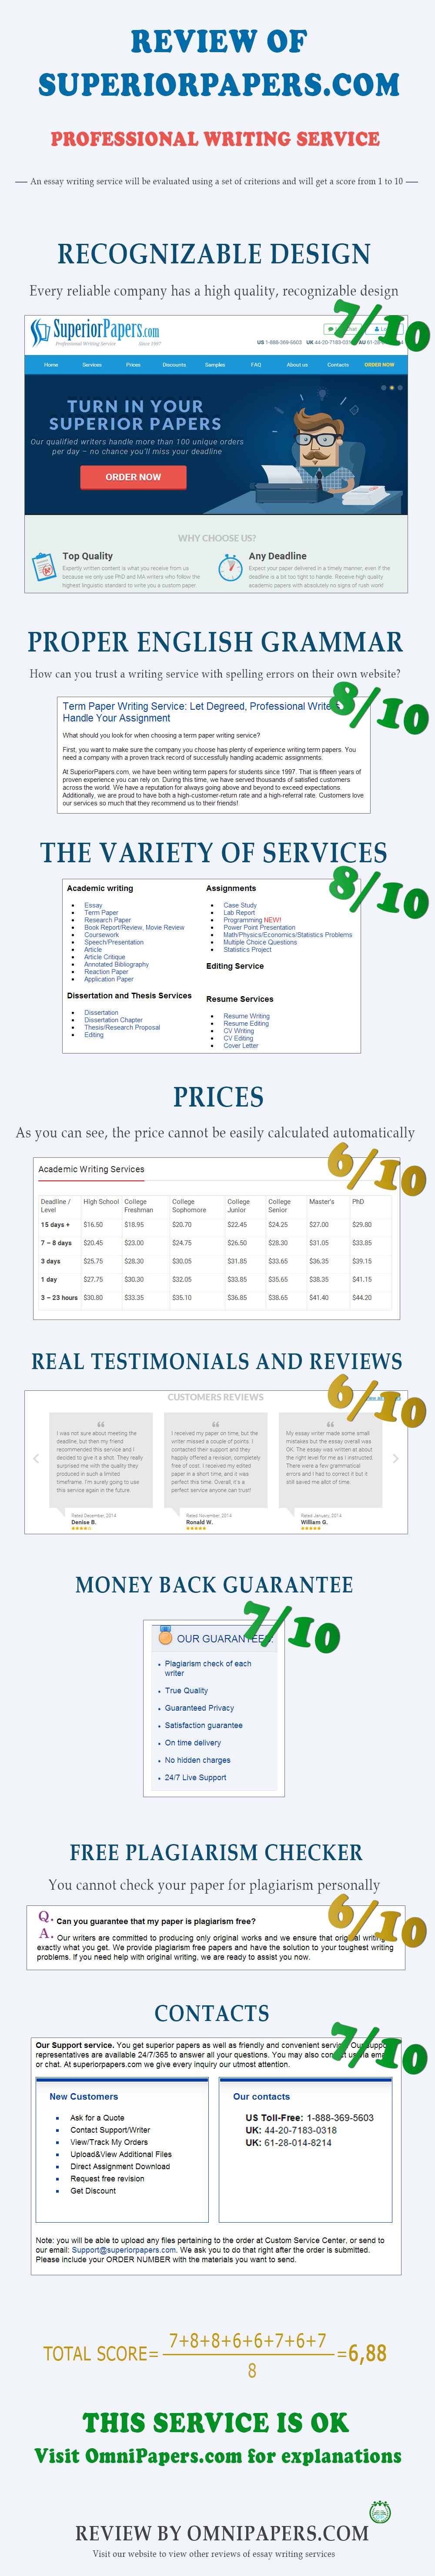 22 Best Infographic Reviews Of Essay Writing Services Images On Pinterest    Writing Services, Essay